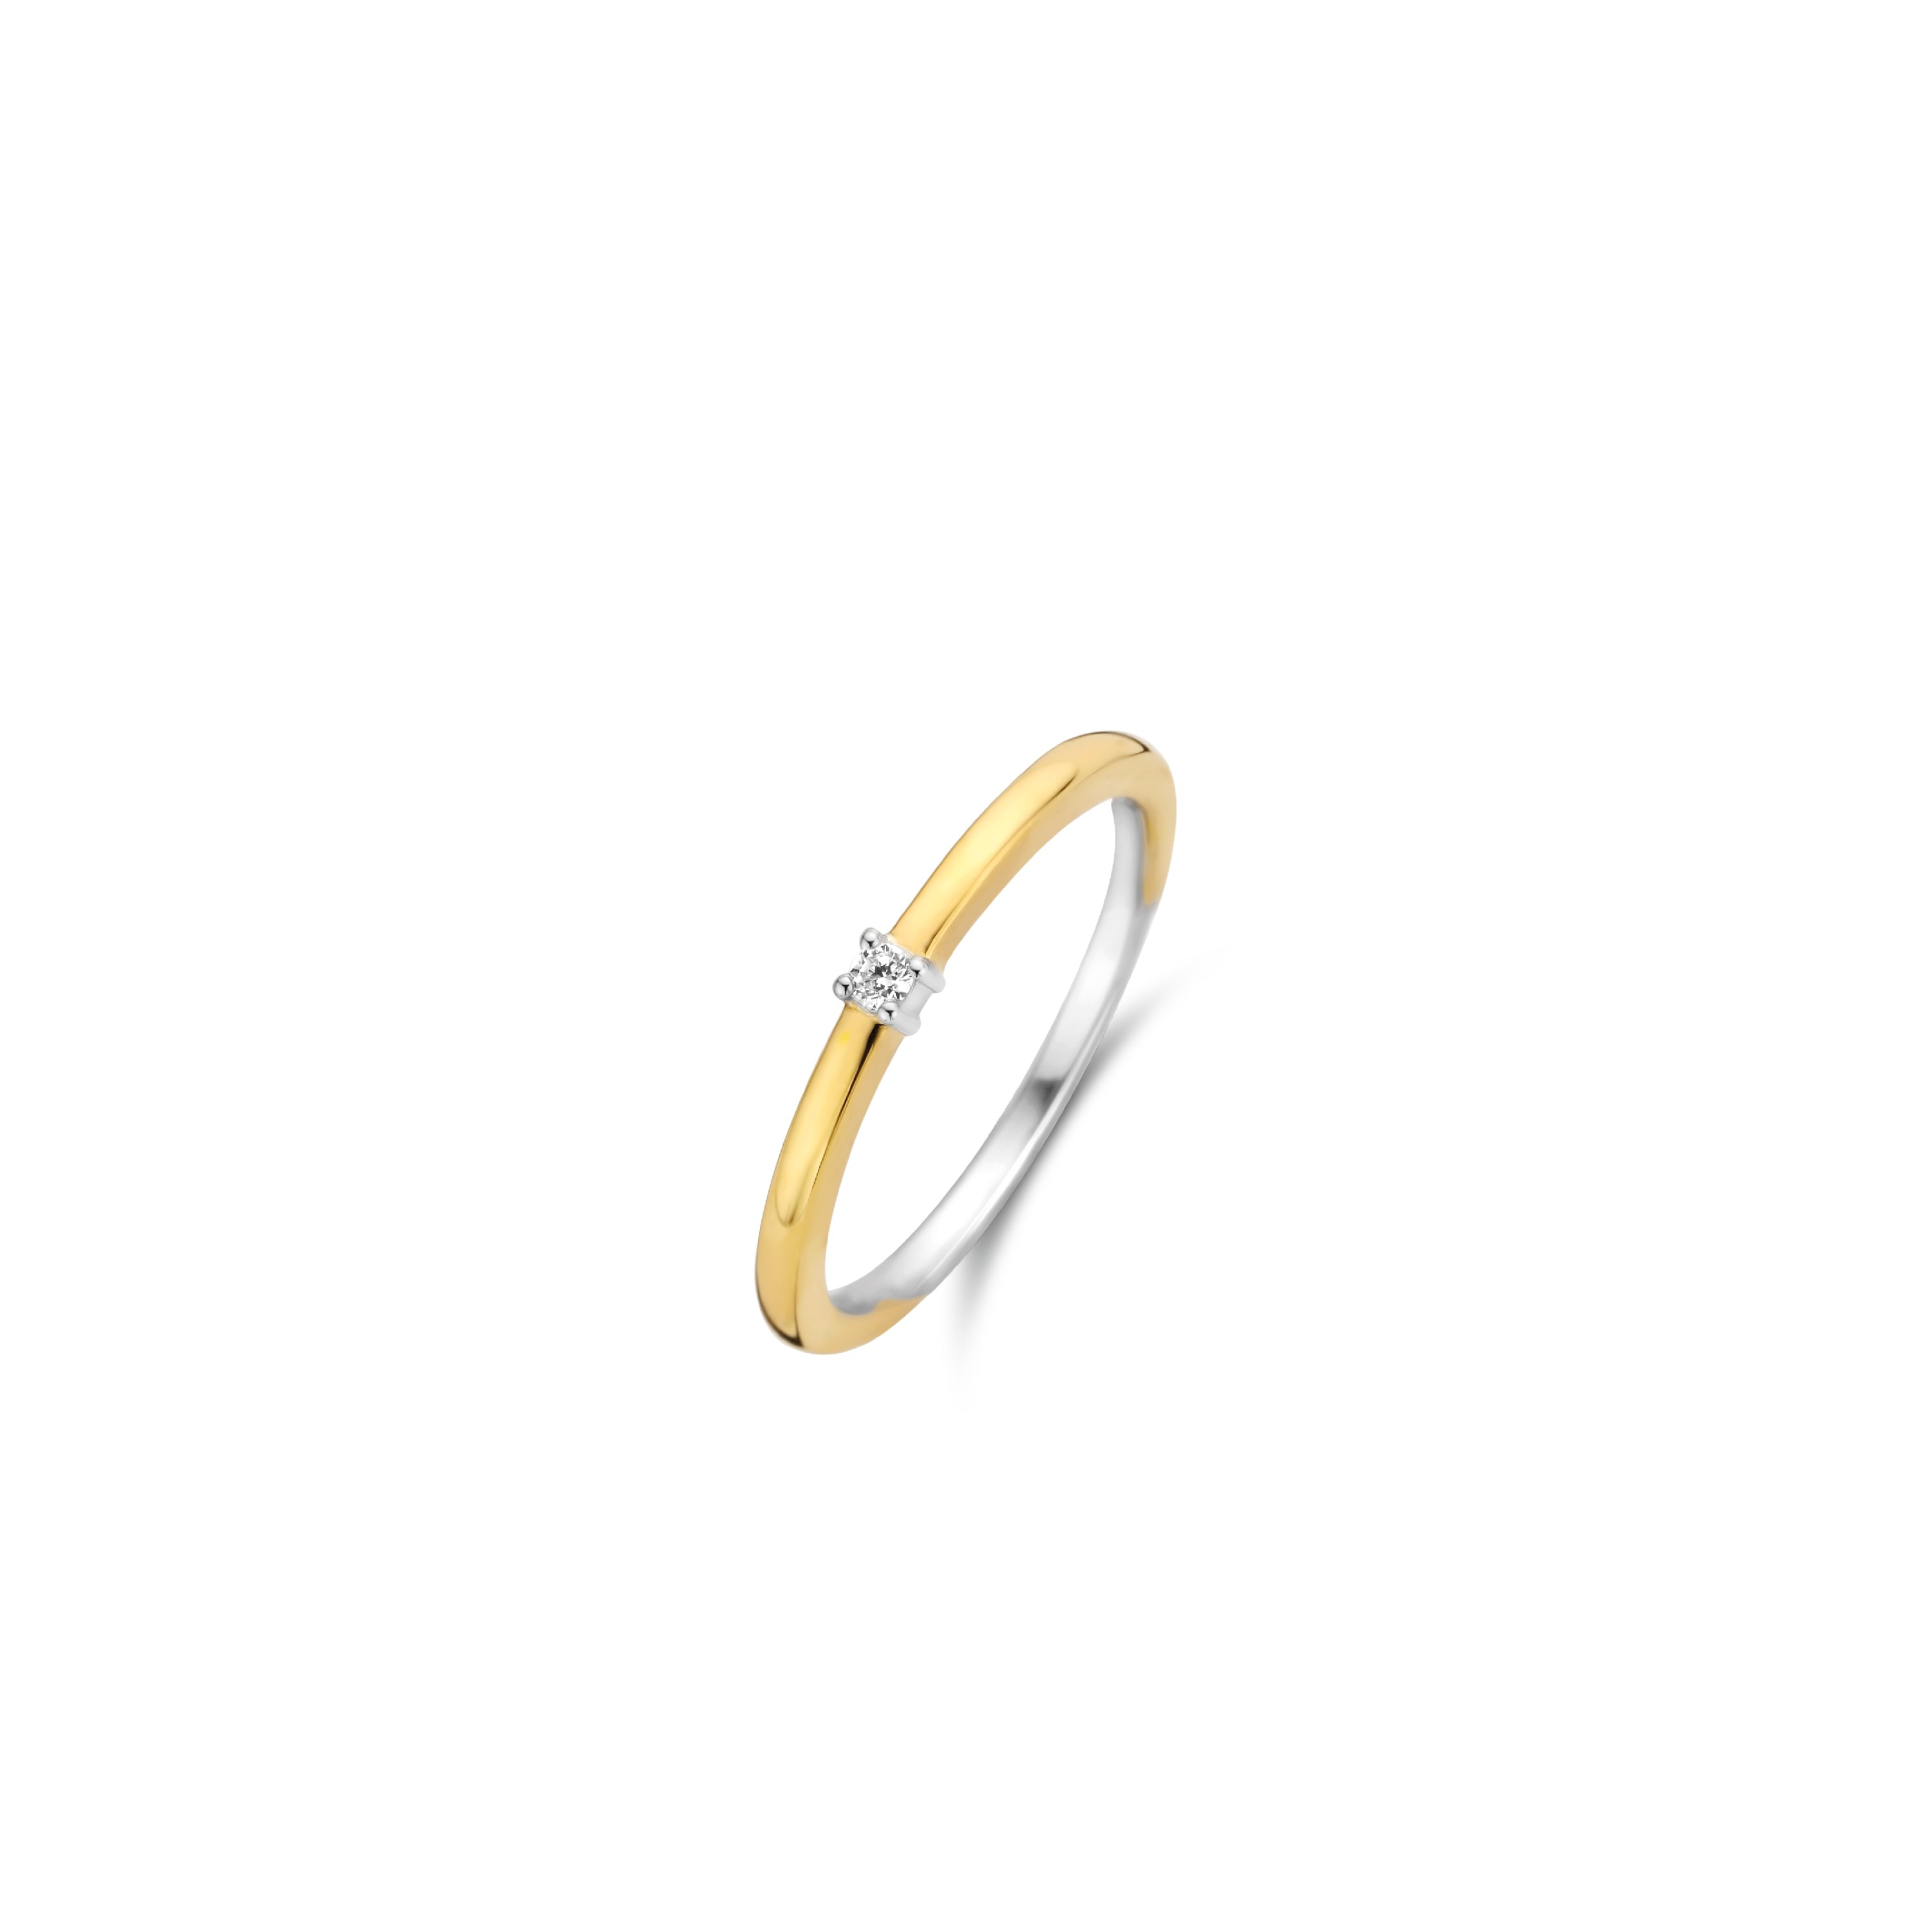 TI SENTO Milano Ring 12210ZY Zilver gold plated Maat 60